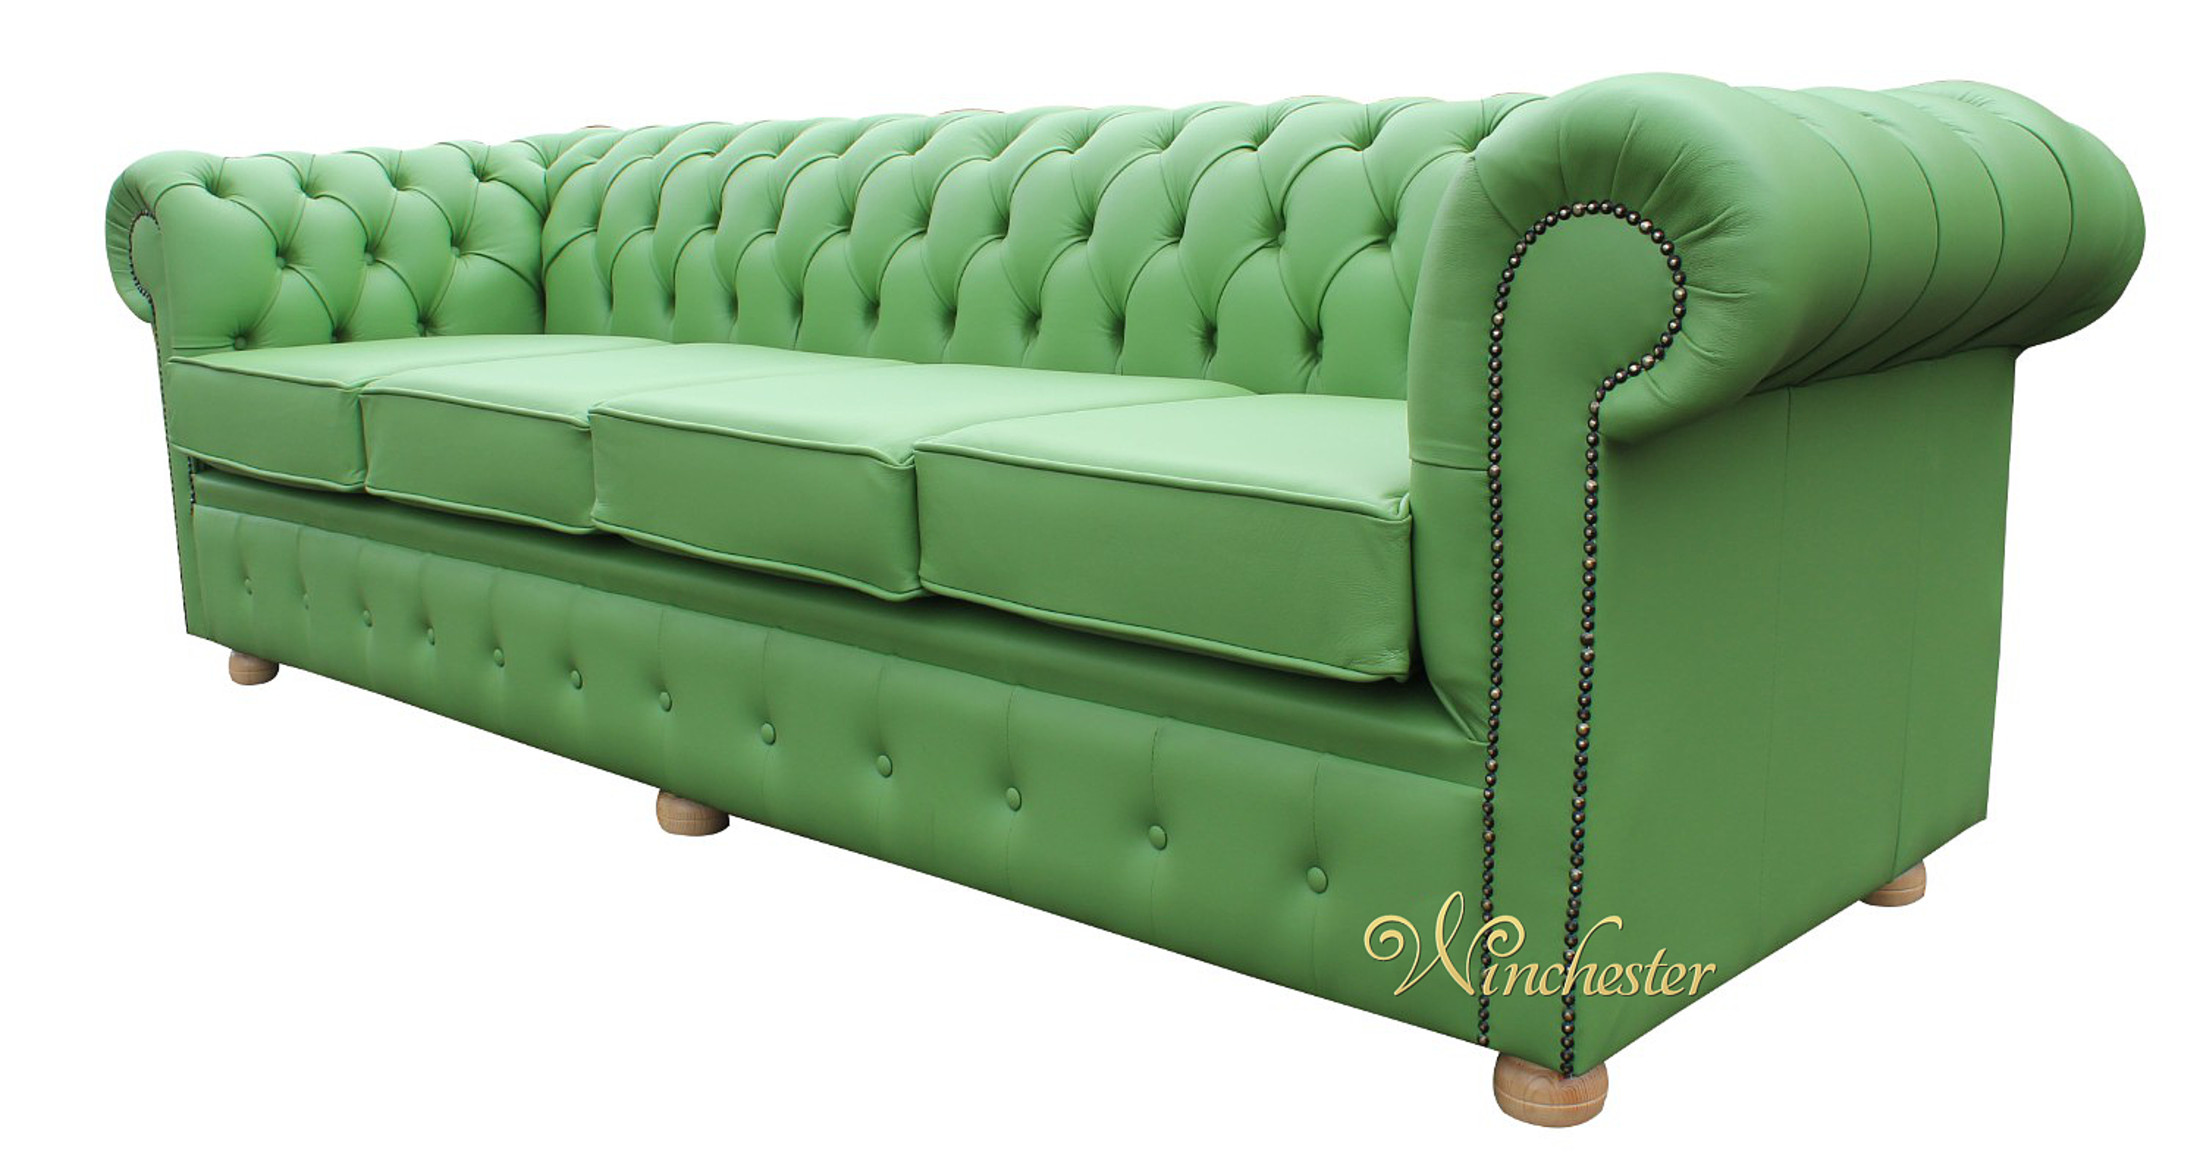 Chesterfield 4 Seater Apple Green Leather Wc